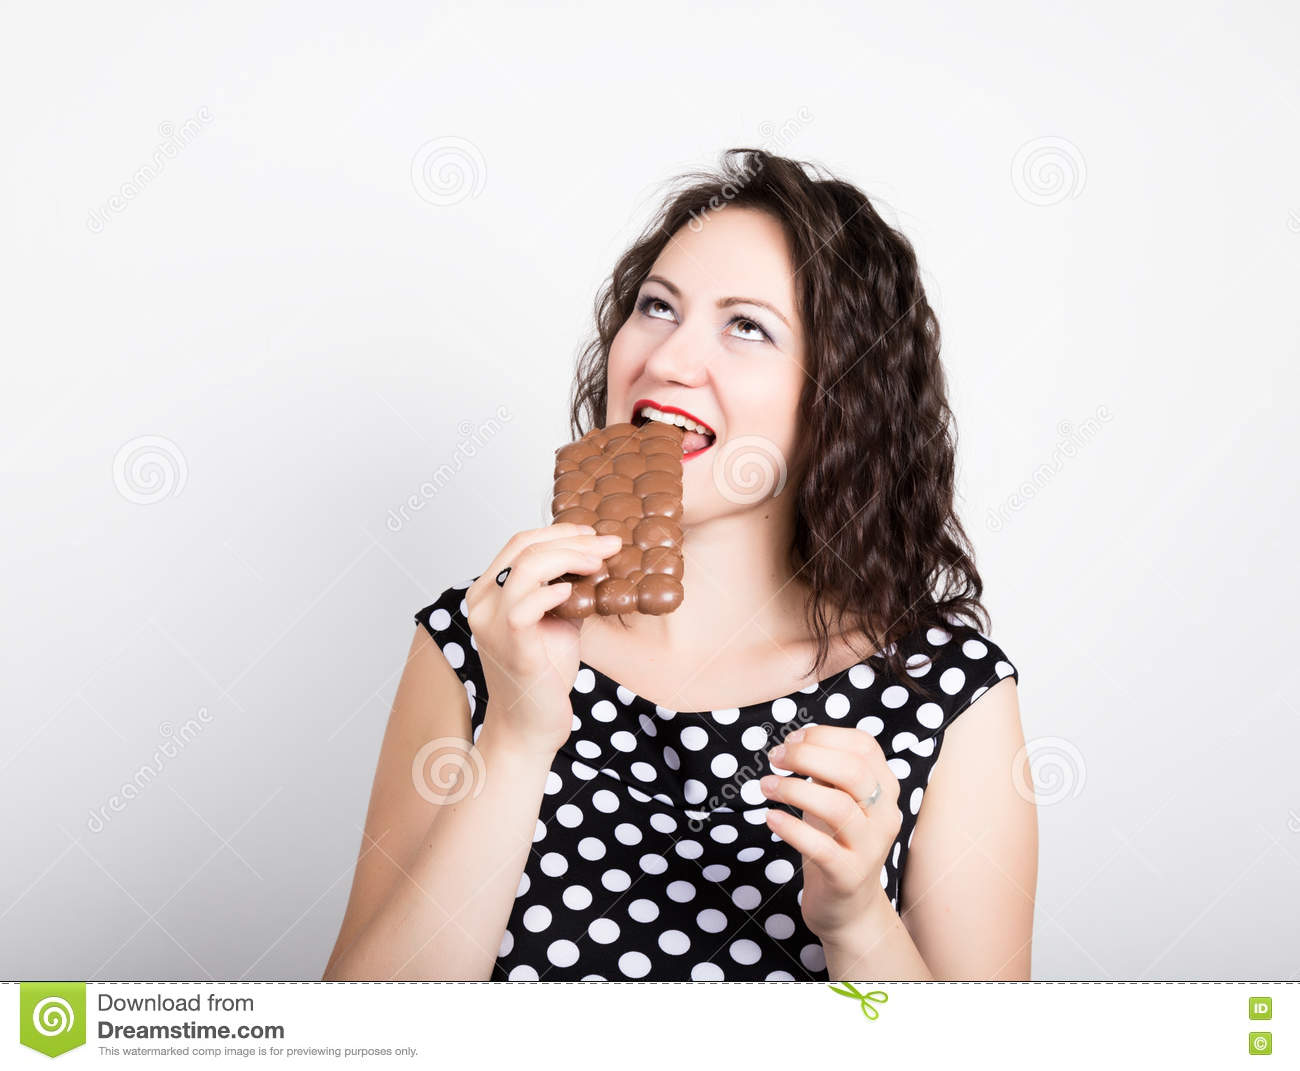 Beautiful Young Woman Eating A Chocolate Bar Wears A Dress With